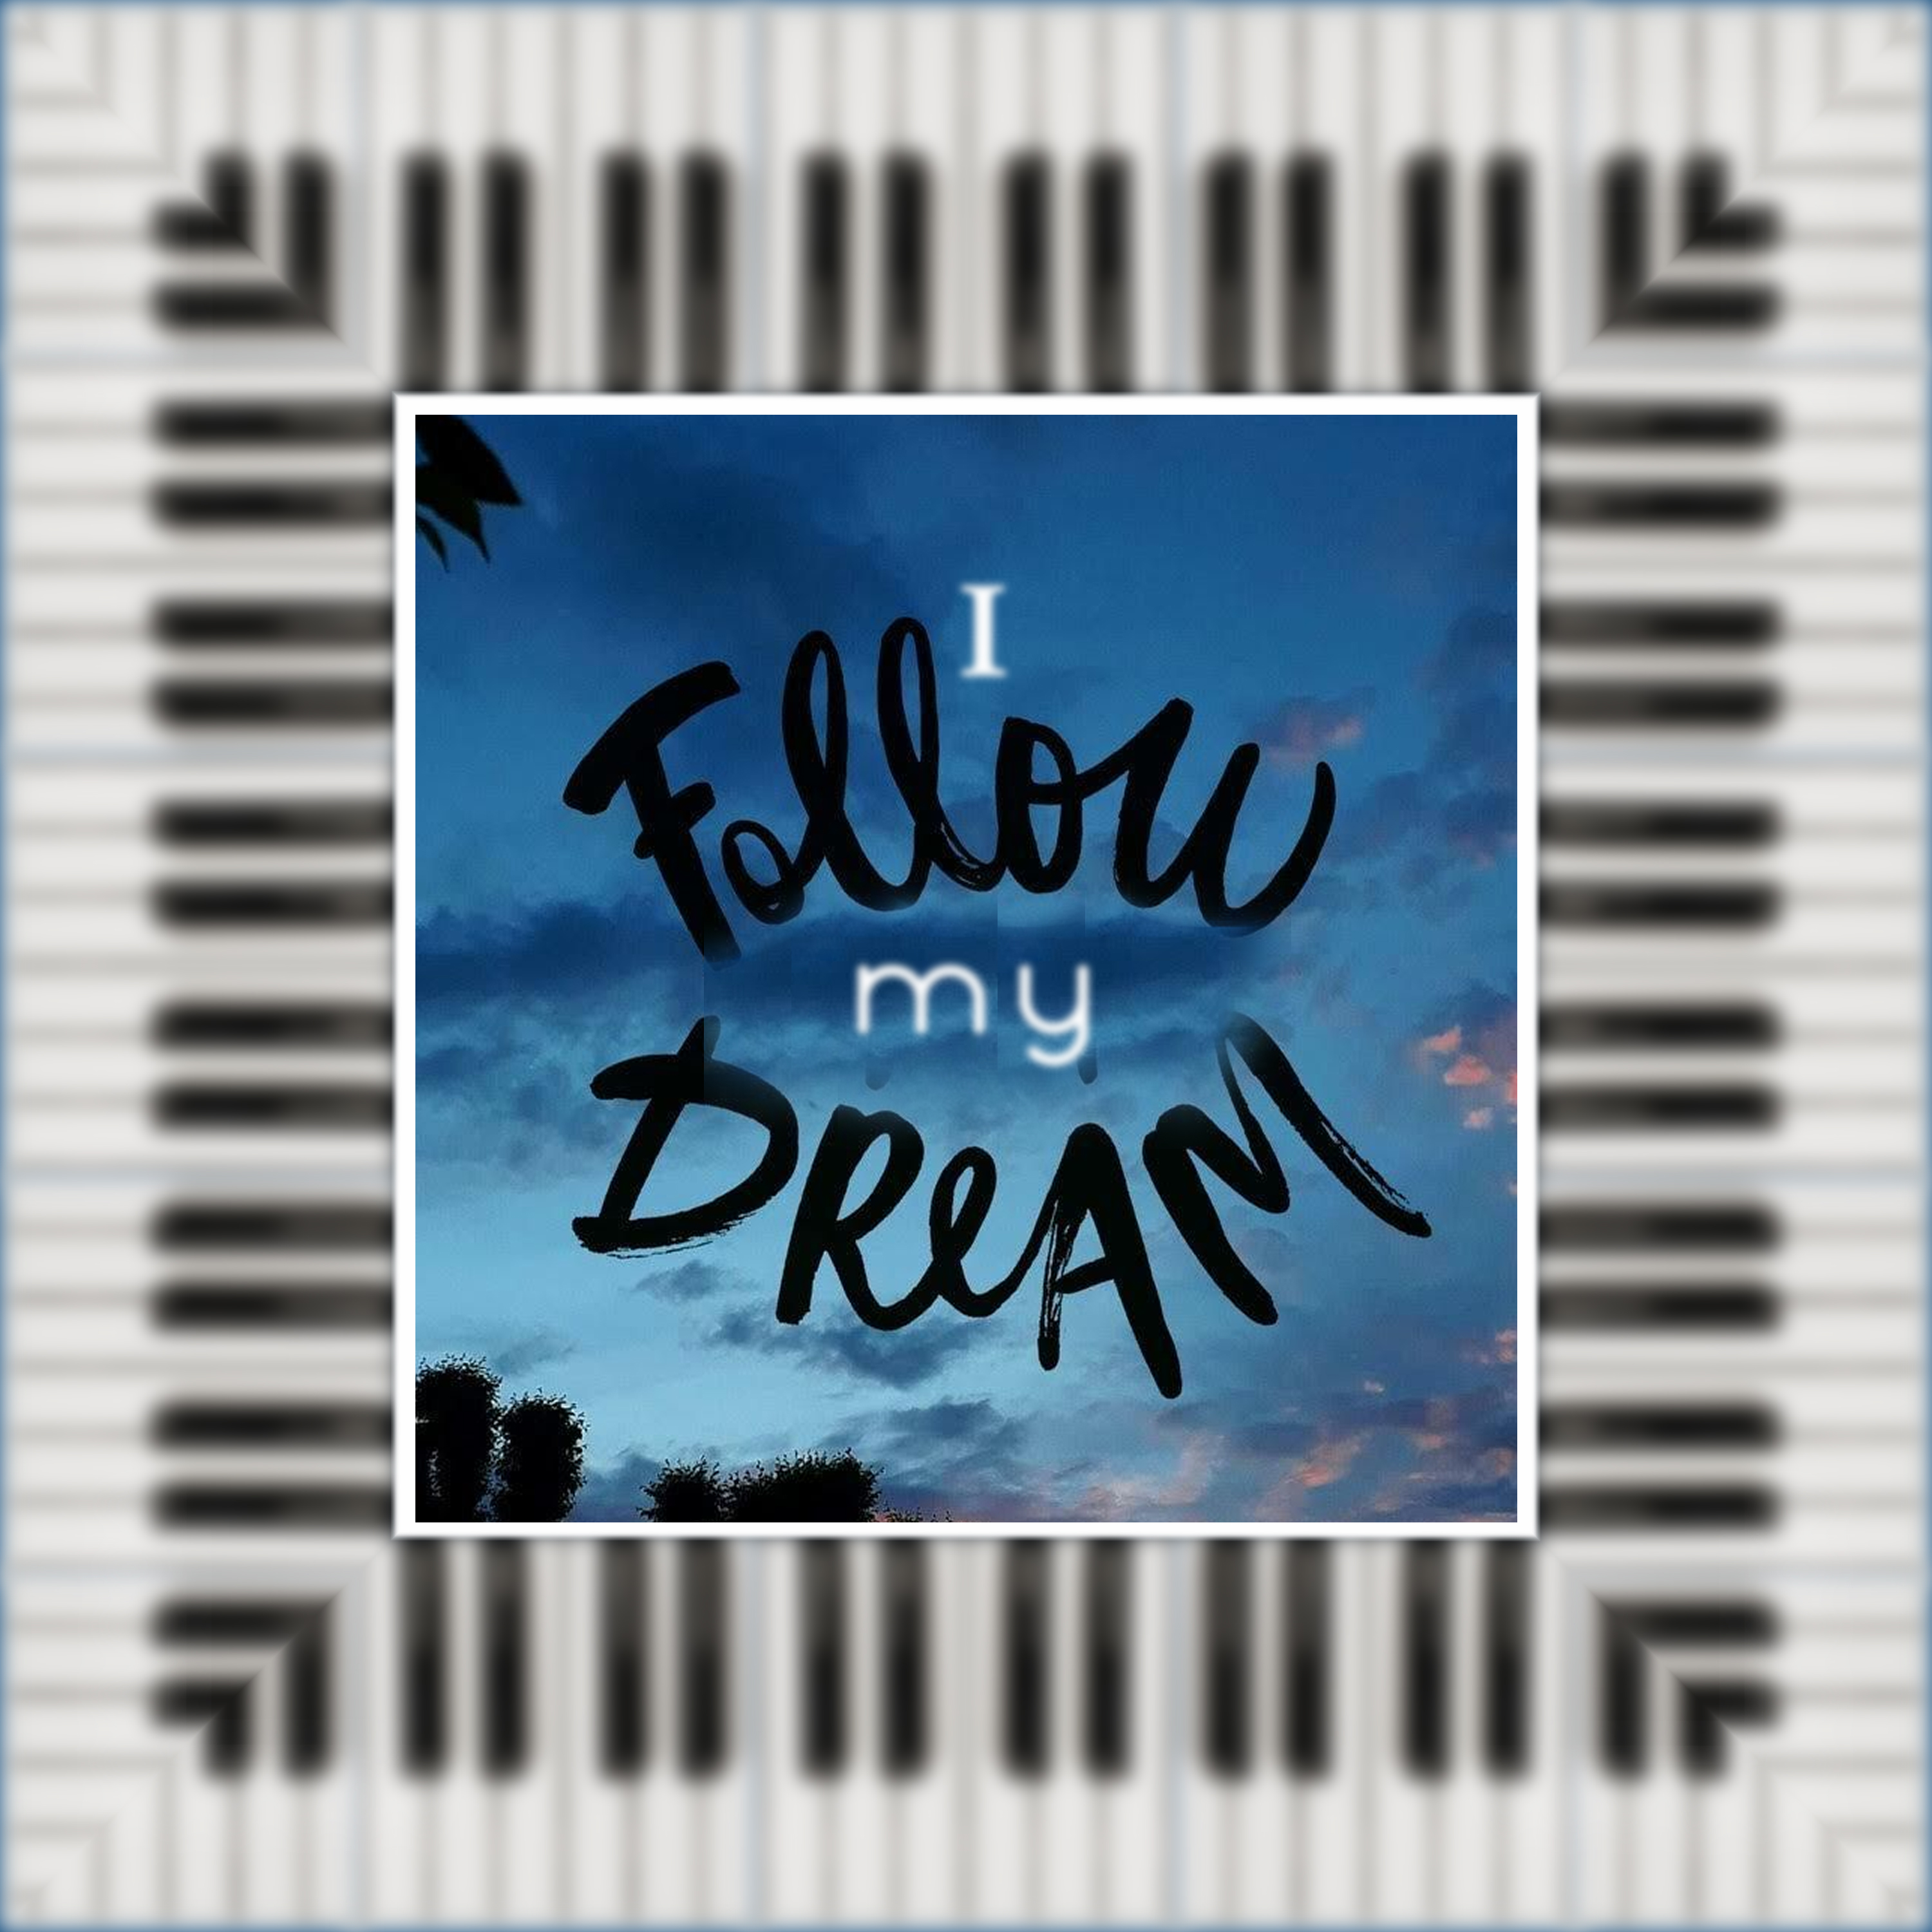 Amazing Kloud I Follow my dreams by Song Cover